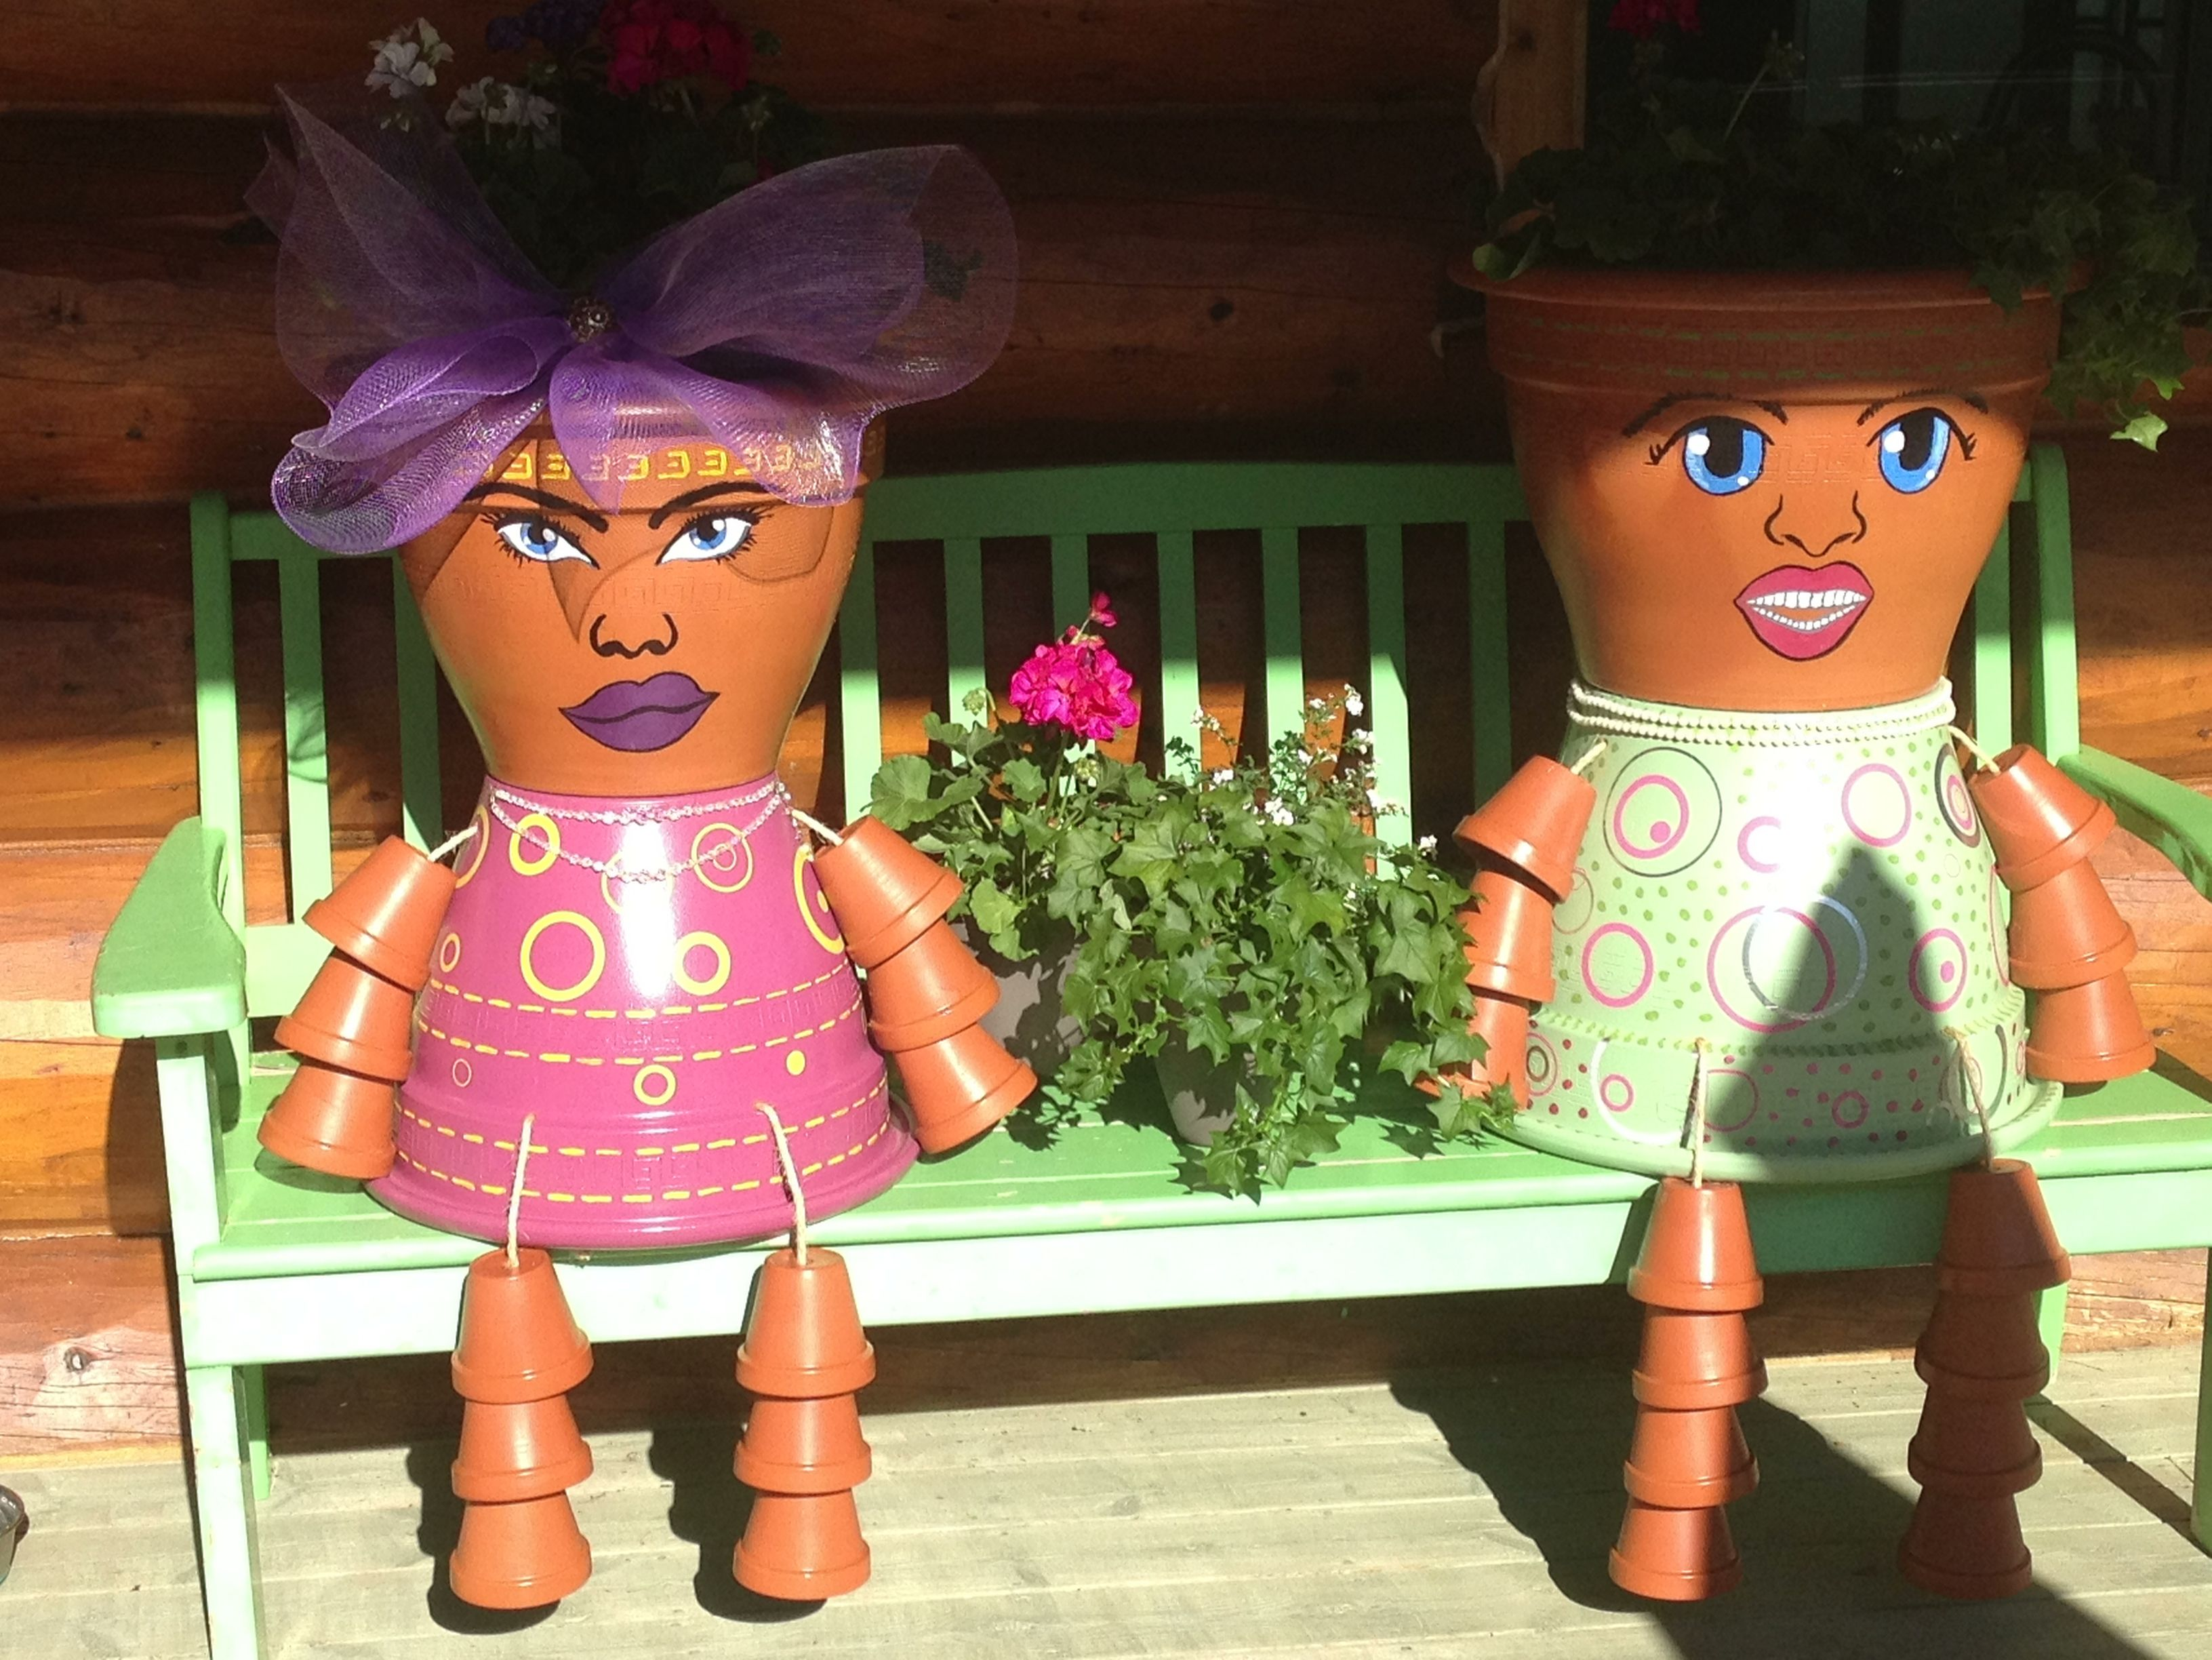 I just completed this project. Flower Pot people, they make me laugh every time I walk up to my entrance! Enjoy!